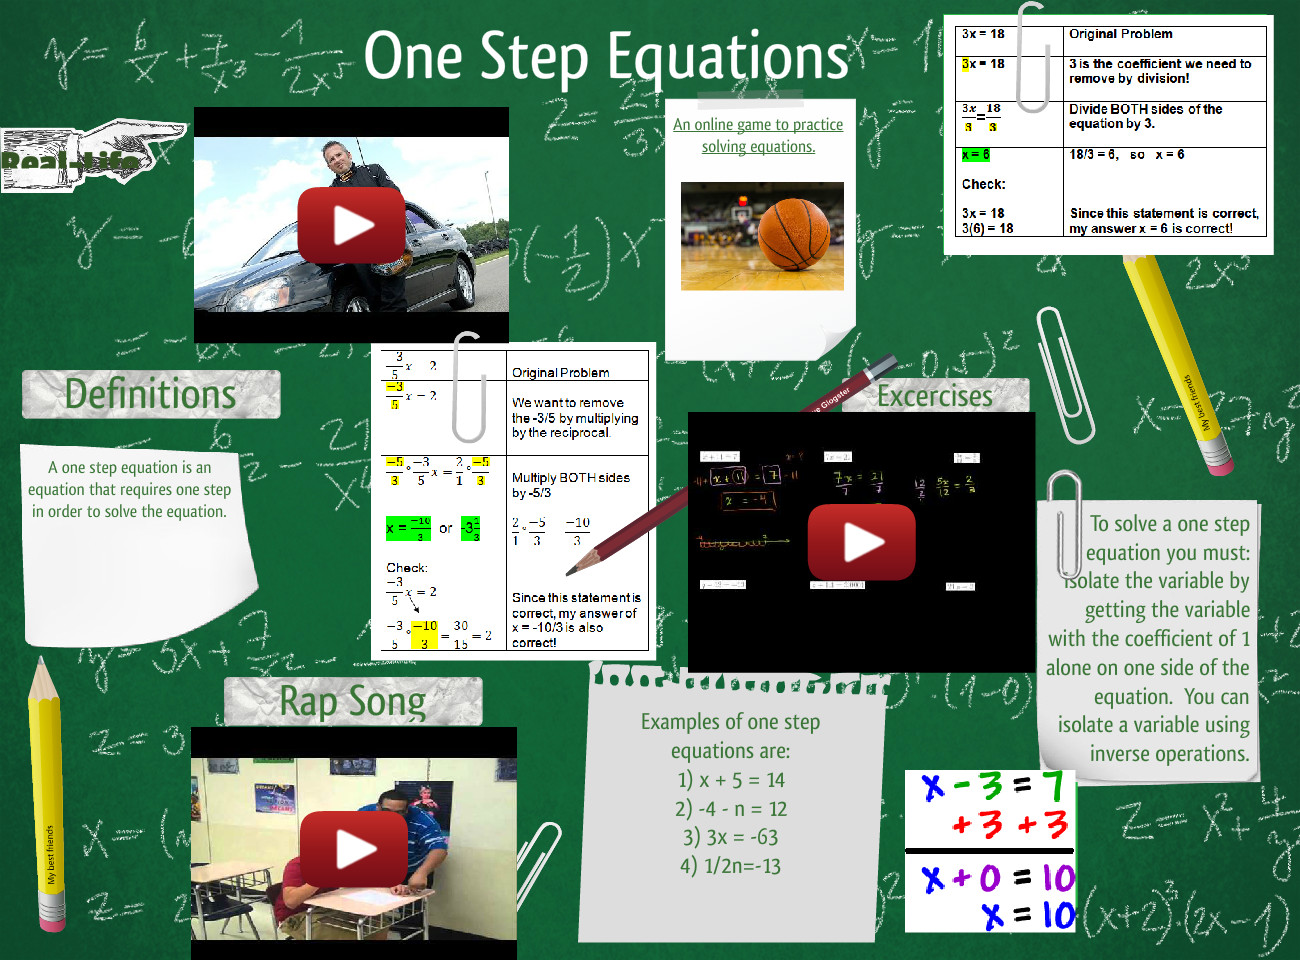 One Step Equations